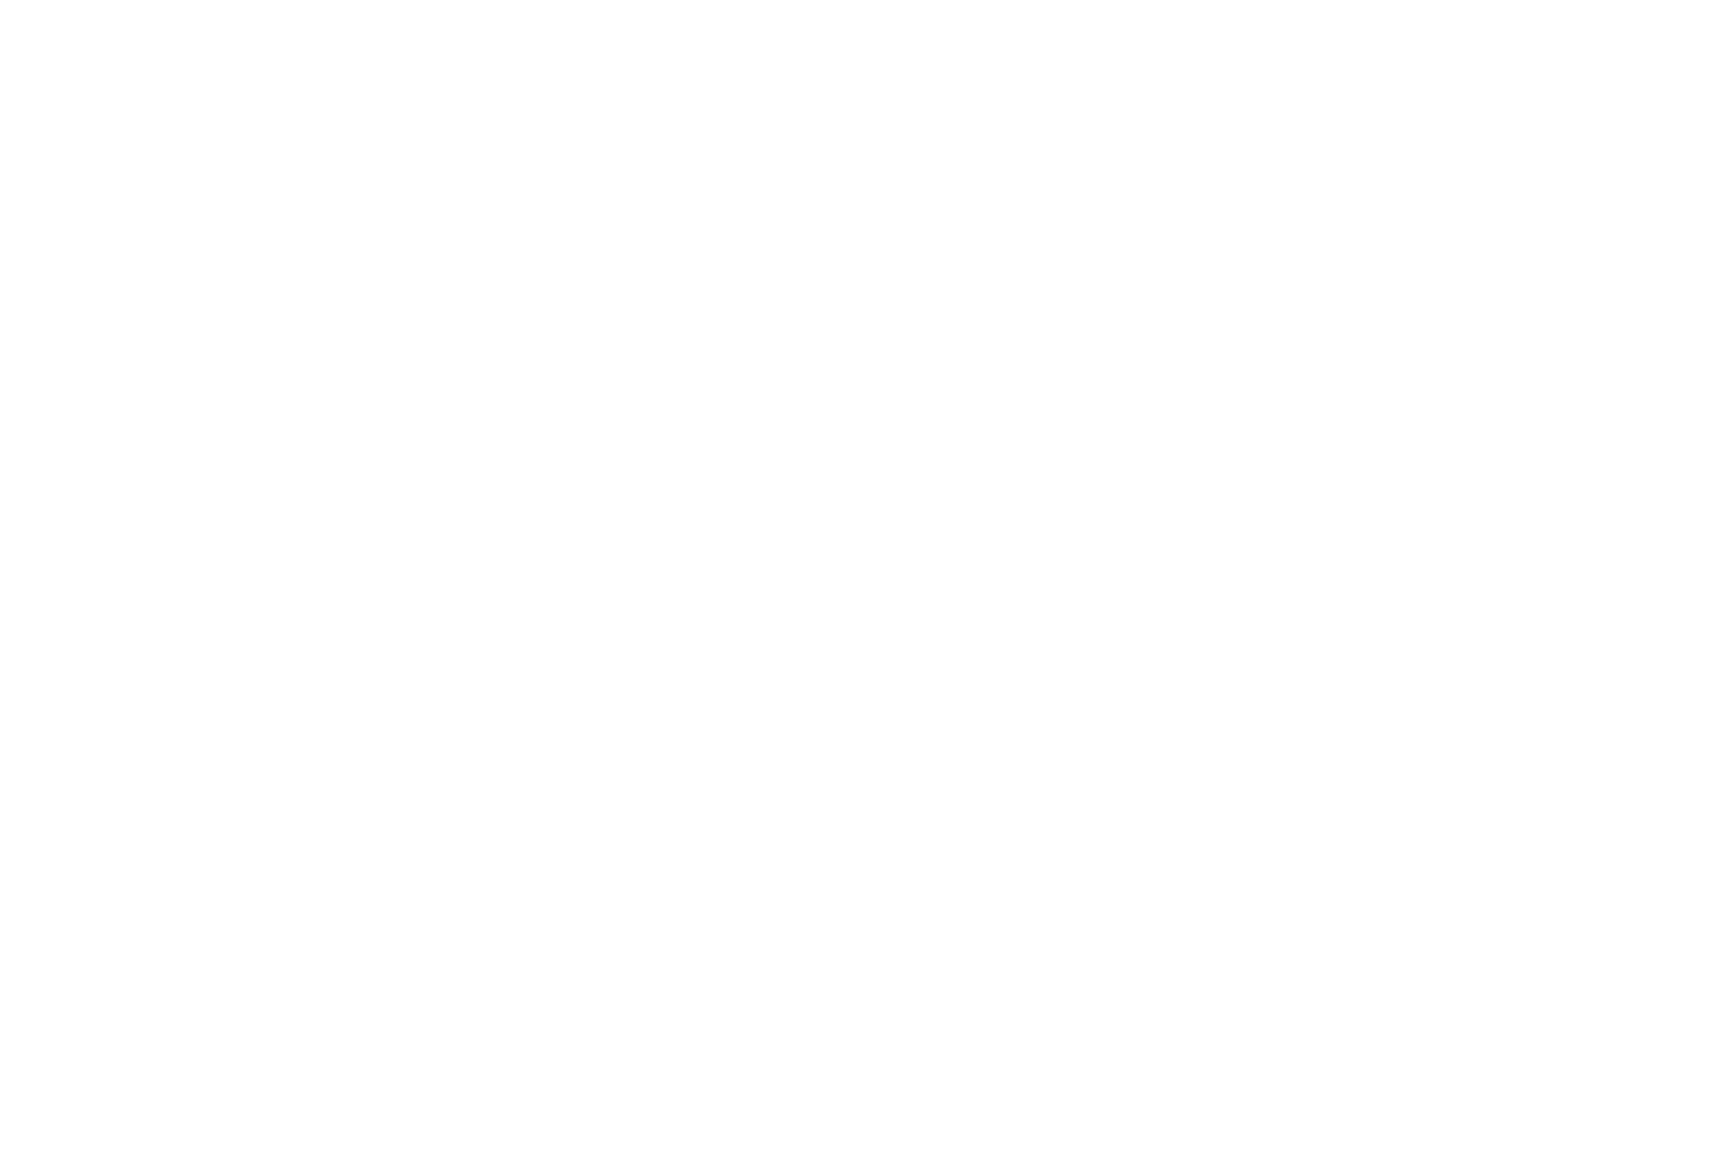 OFFICIAL SELECTION - Miami Independent Film Festival - 2016